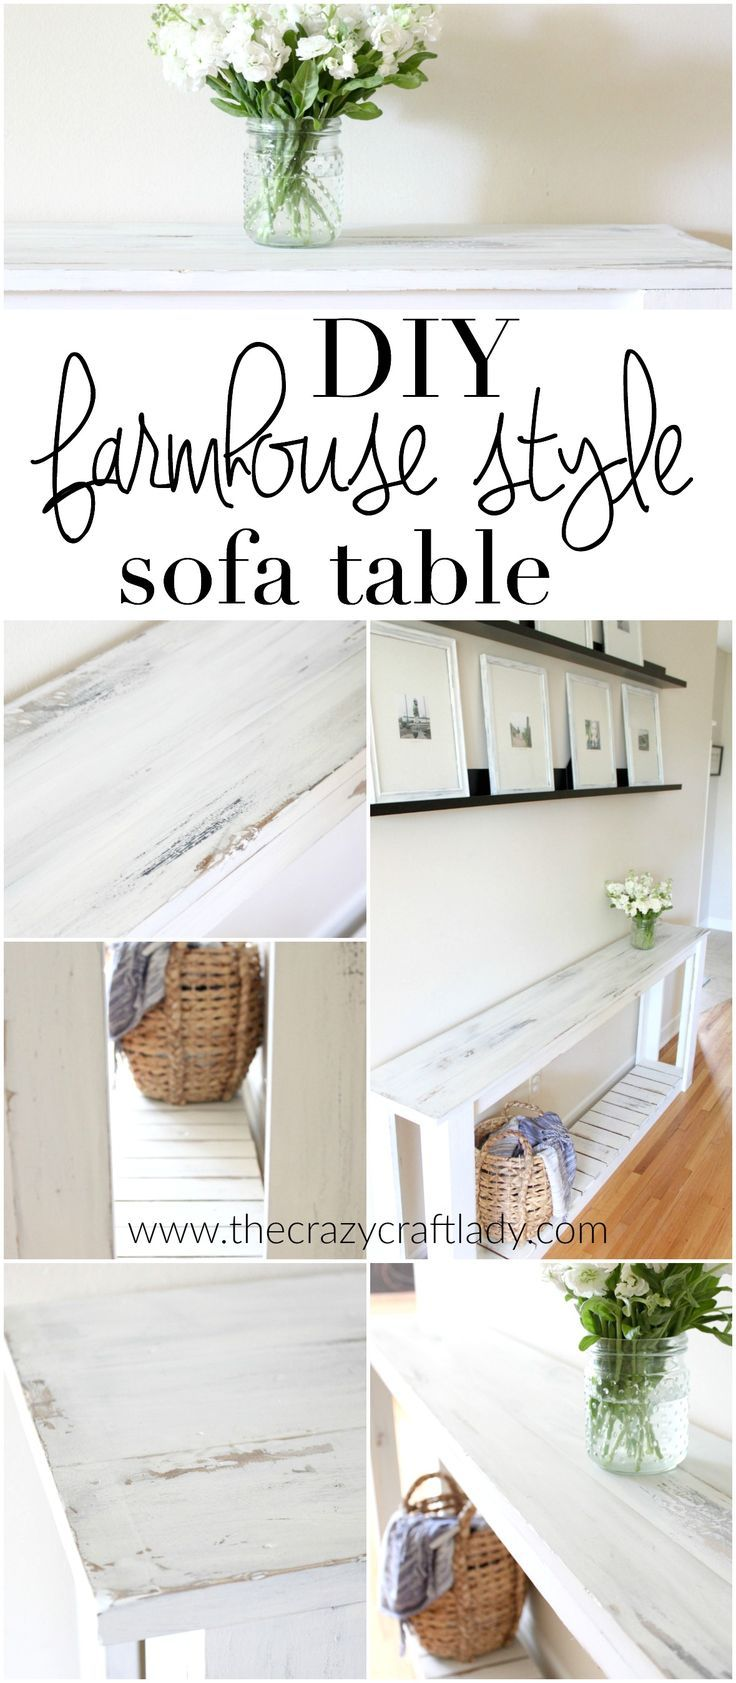 DIY Sofa Table - Farmhouse Style | Wood Glue, Farmhouse Style And